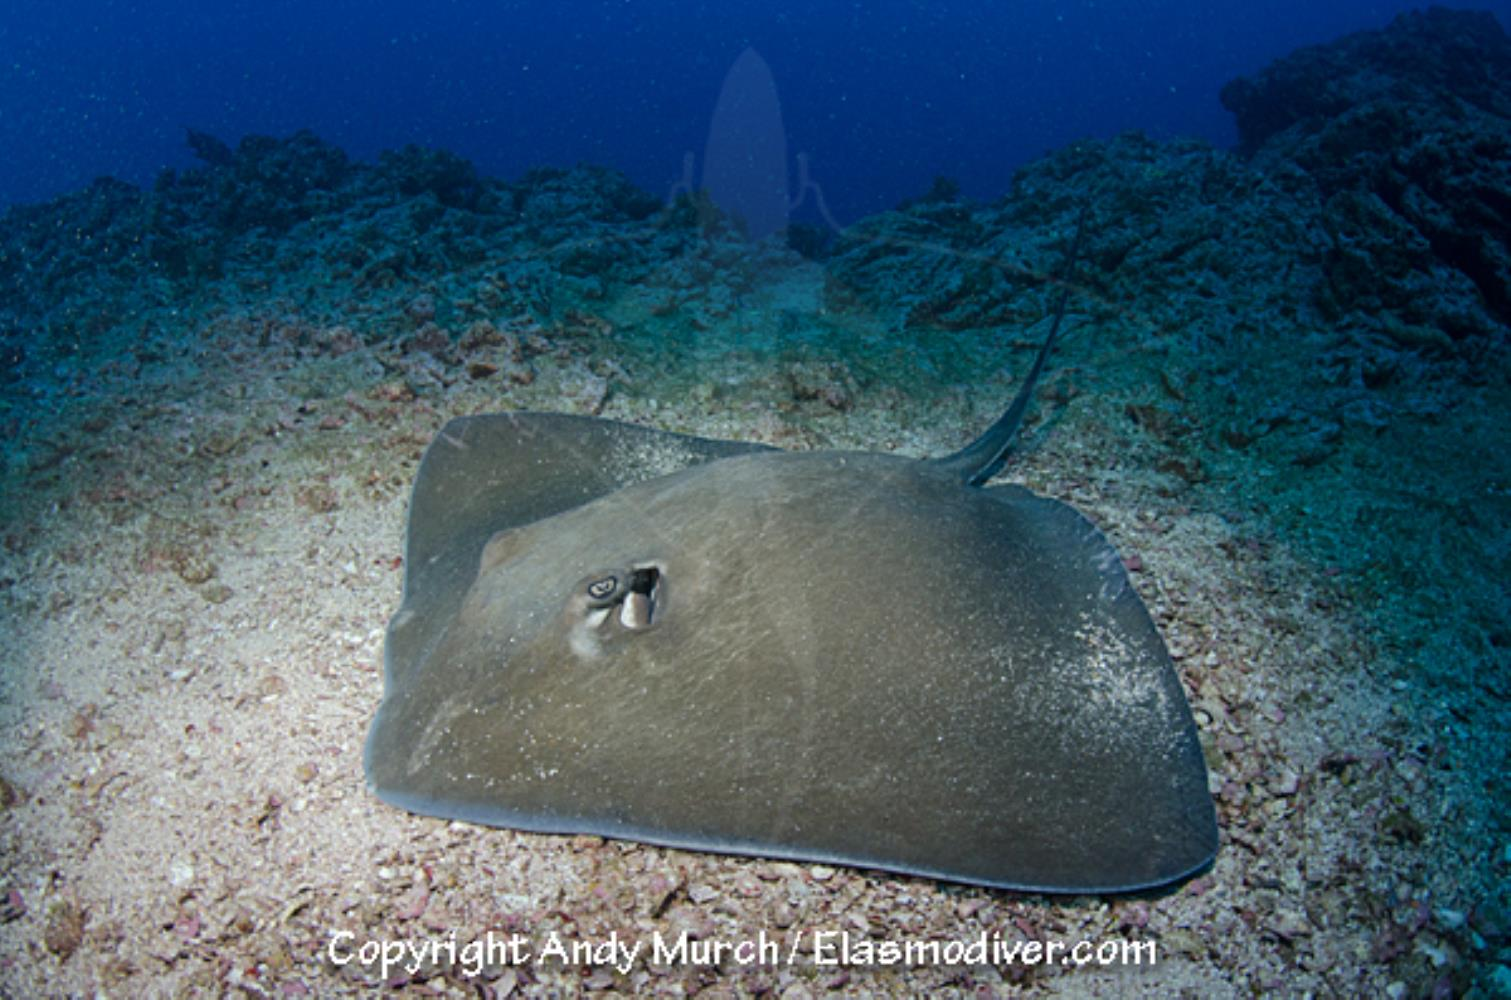 Longtail stingray